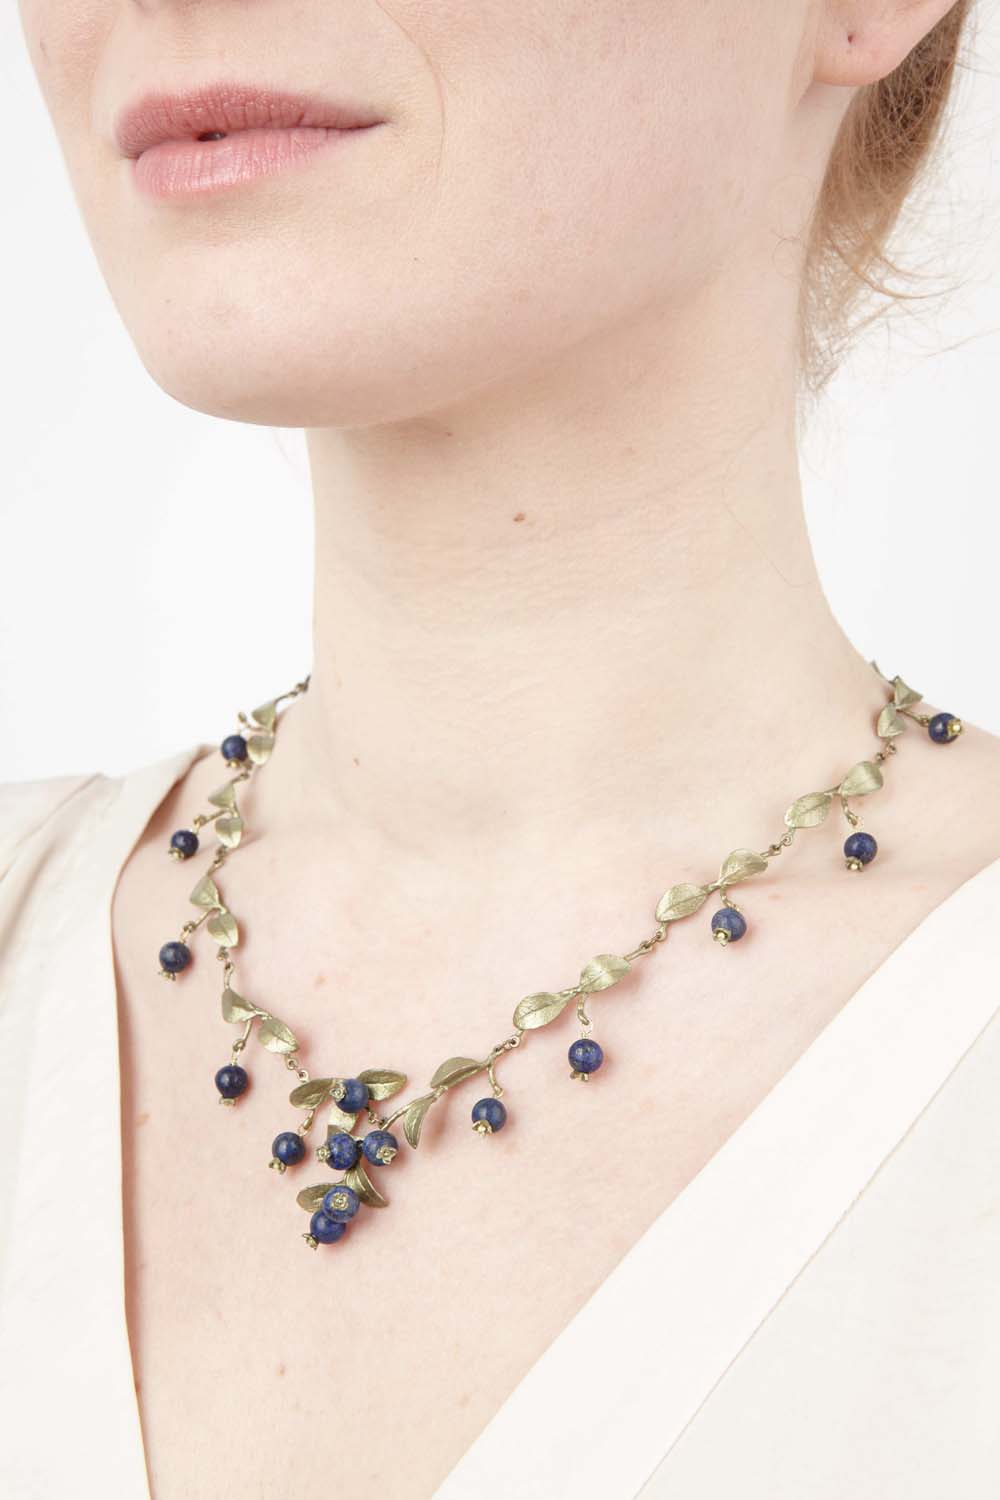 Blueberry Necklace - Cluster